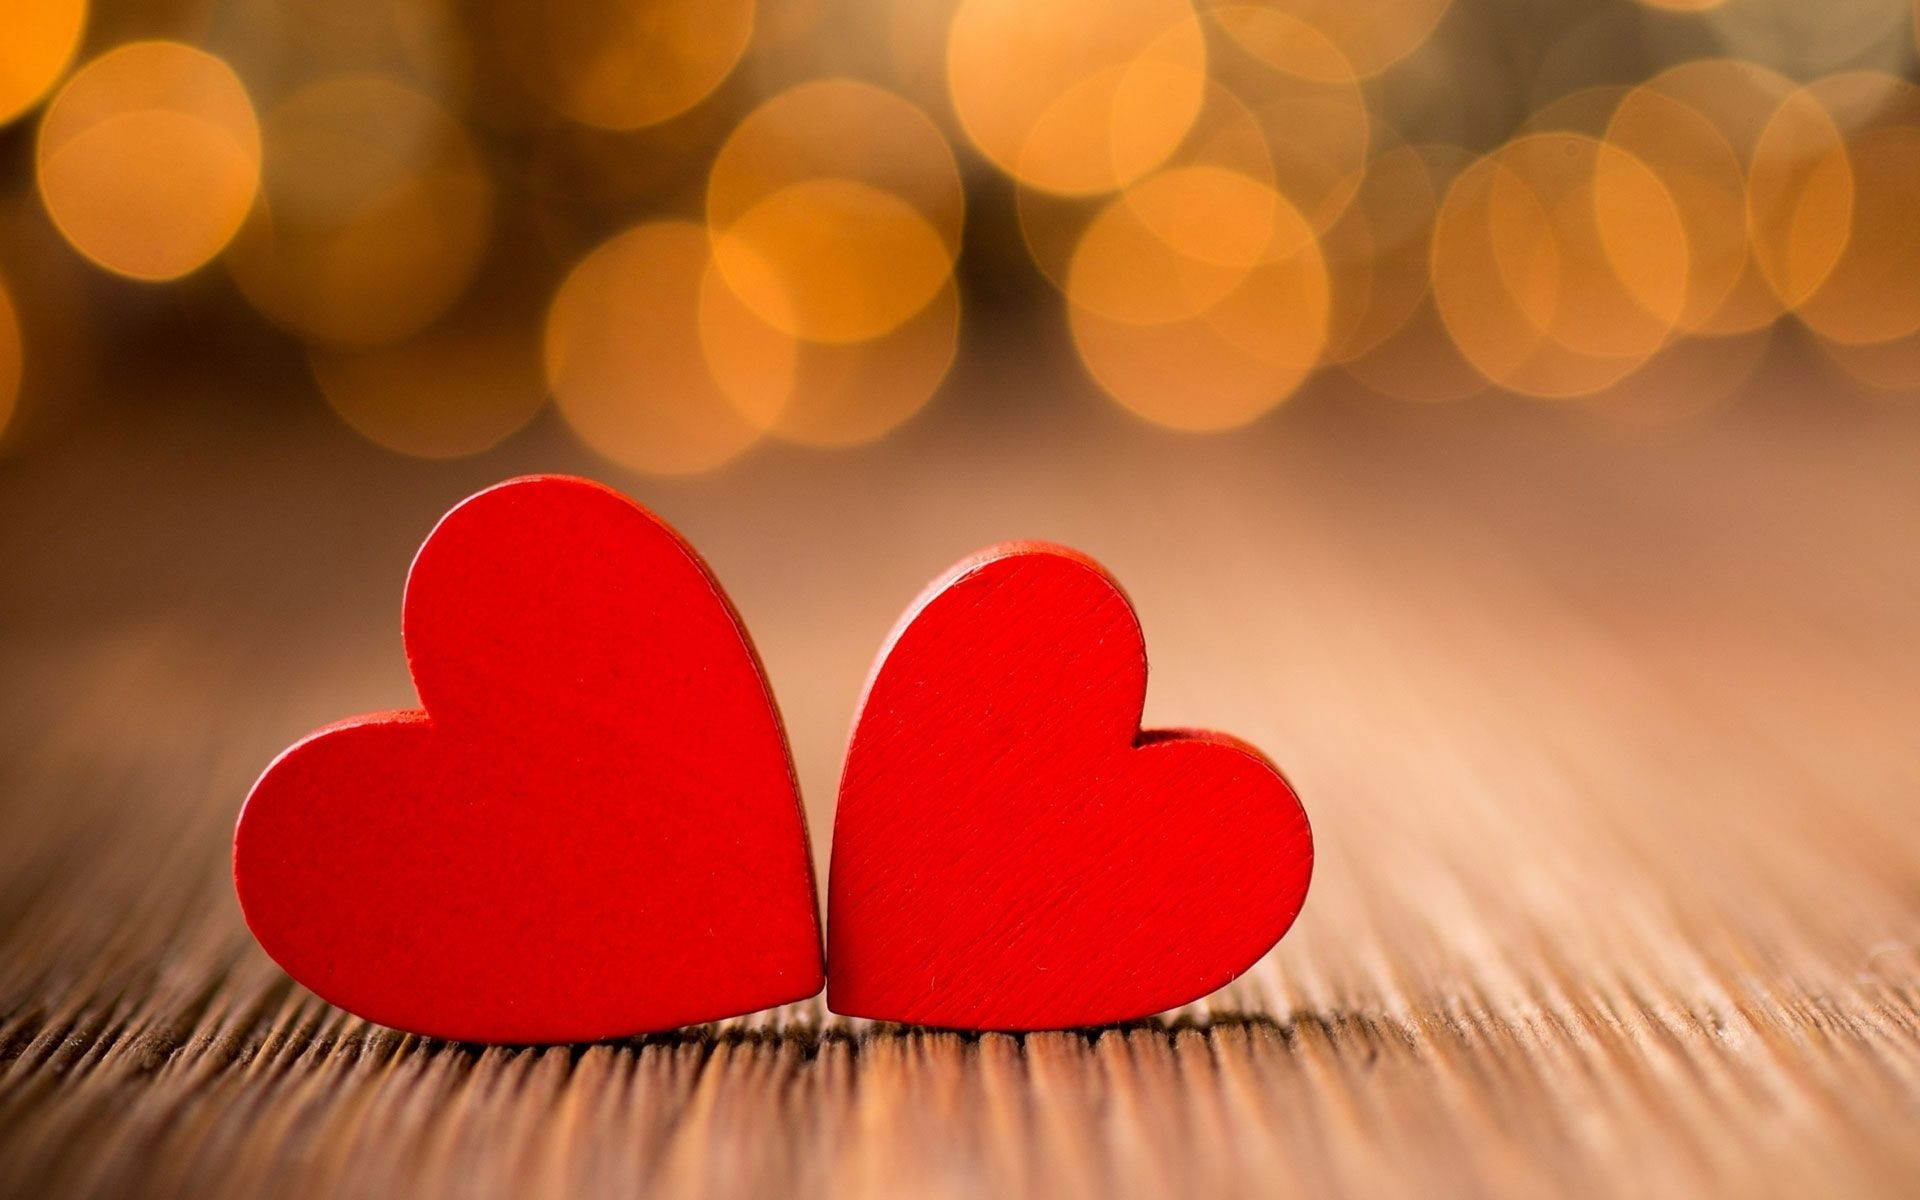 Cute Hearts Wallpapers 60 Background Pictures